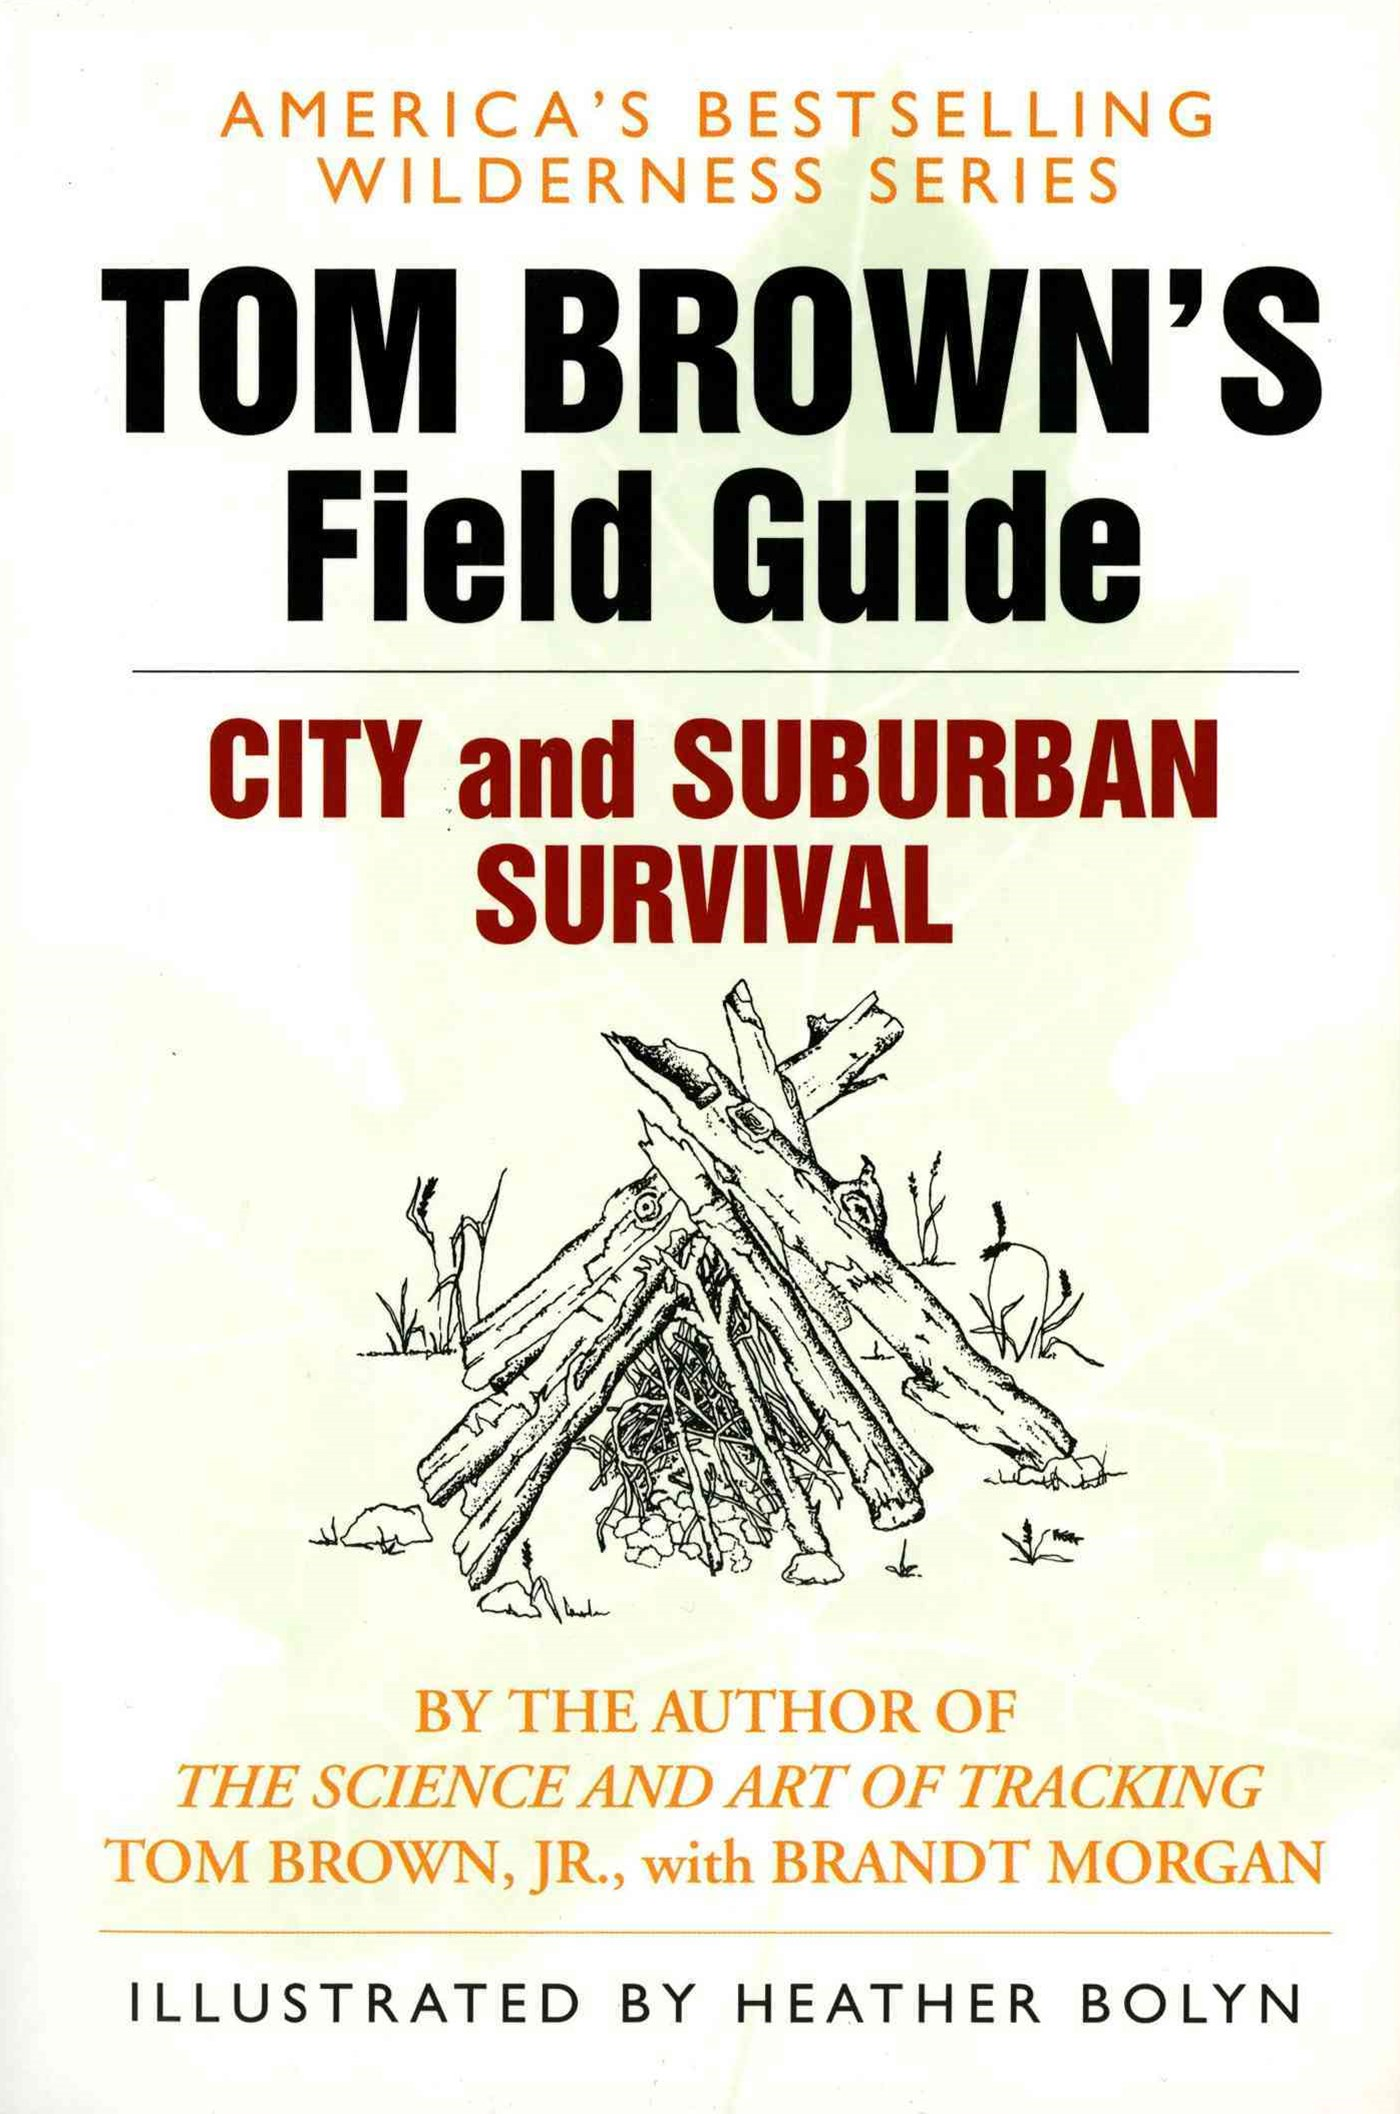 Tom Brown's Feild Guide - City and Suburban Survival